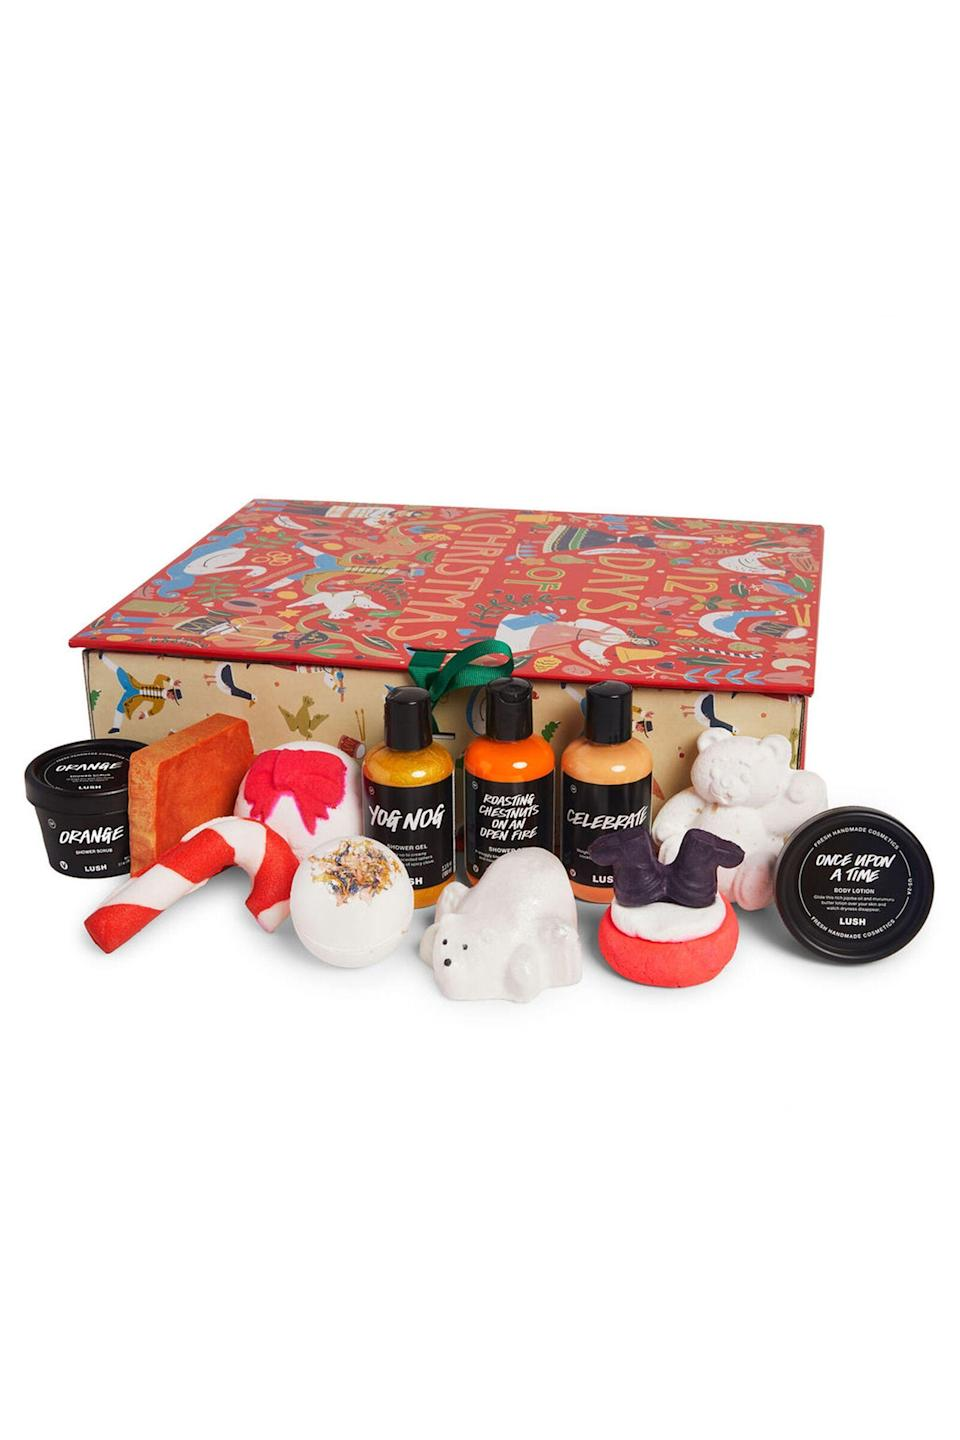 """<p>lushusa.com</p><p><strong>$99.95</strong></p><p><a href=""""https://www.lushusa.com/gifts/christmas-gifts/12-days-of-christmas/9999960406.html"""" rel=""""nofollow noopener"""" target=""""_blank"""" data-ylk=""""slk:Shop Now"""" class=""""link rapid-noclick-resp"""">Shop Now</a></p>"""